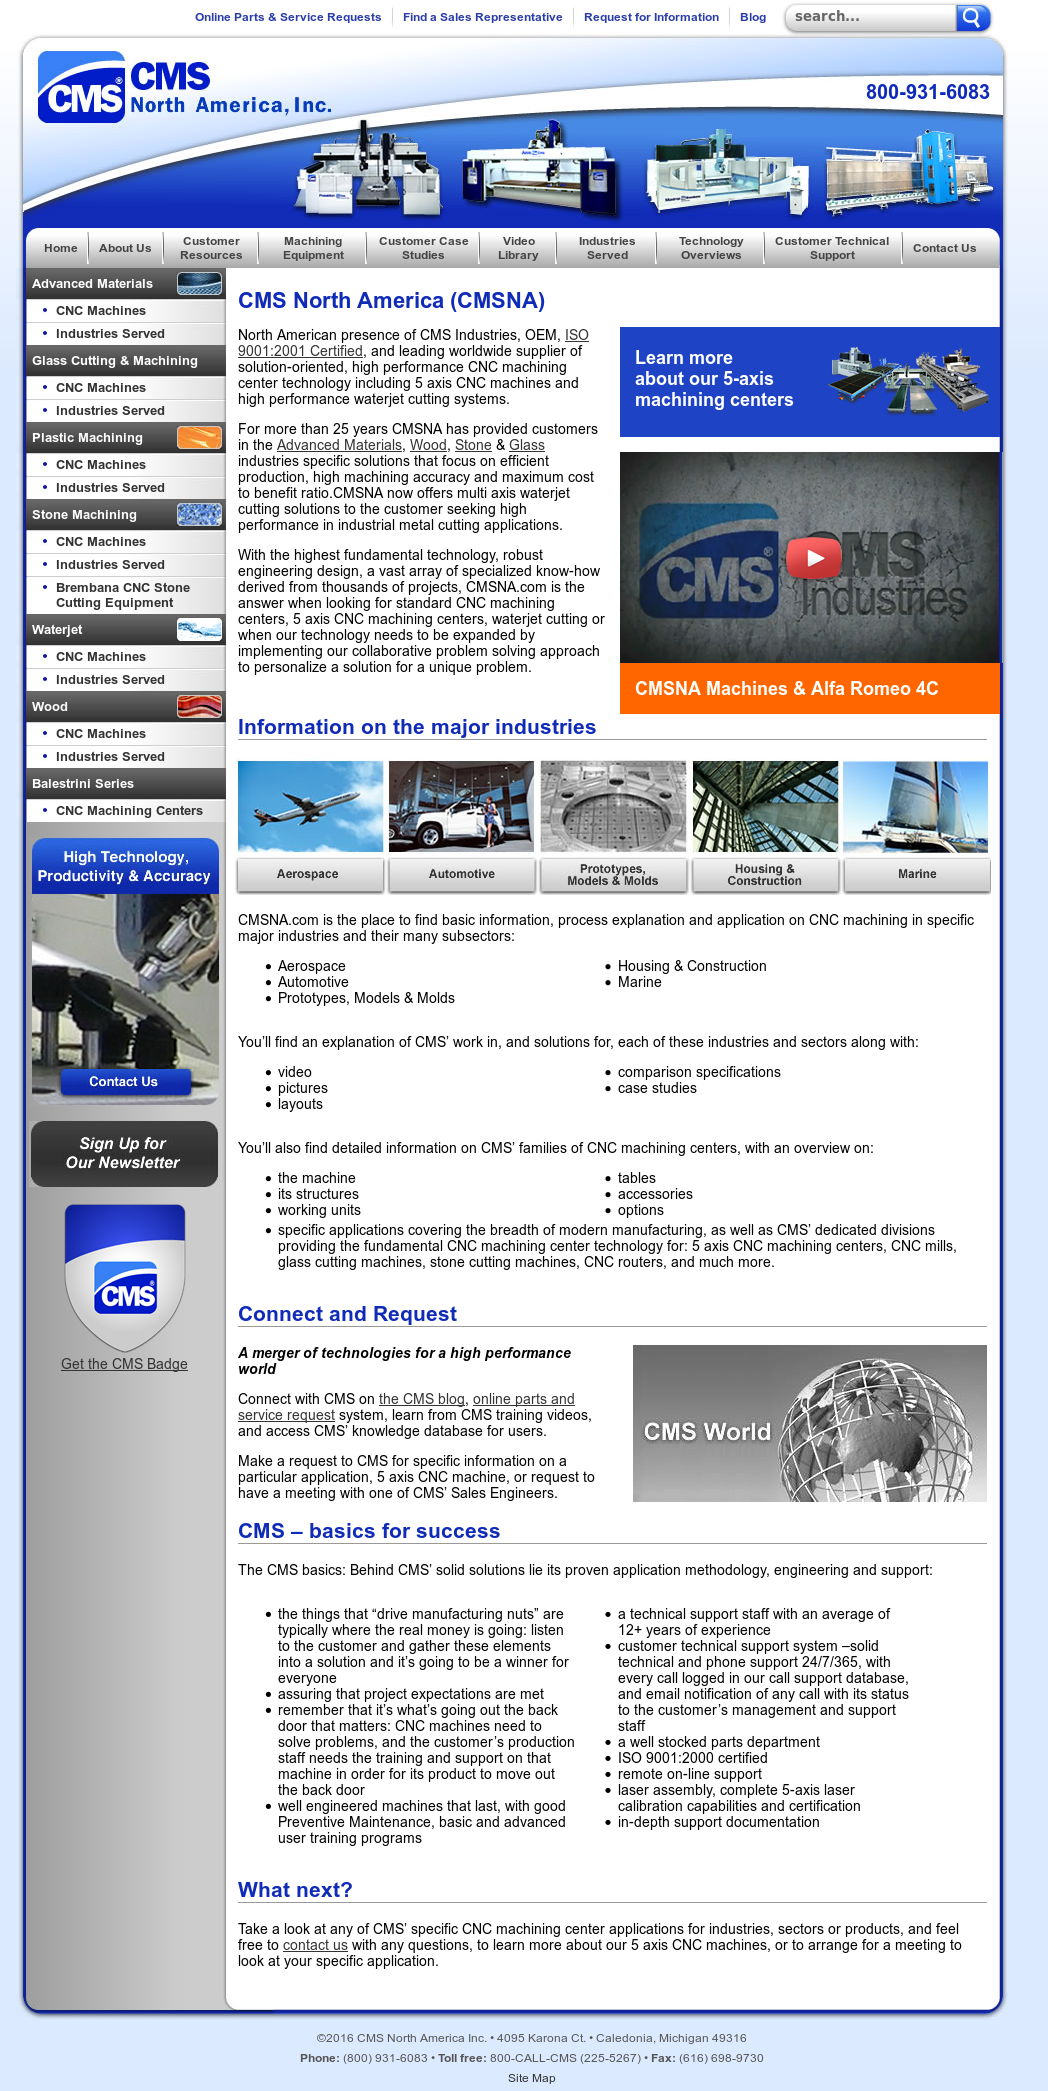 CMSNA Competitors, Revenue and Employees - Owler Company Profile